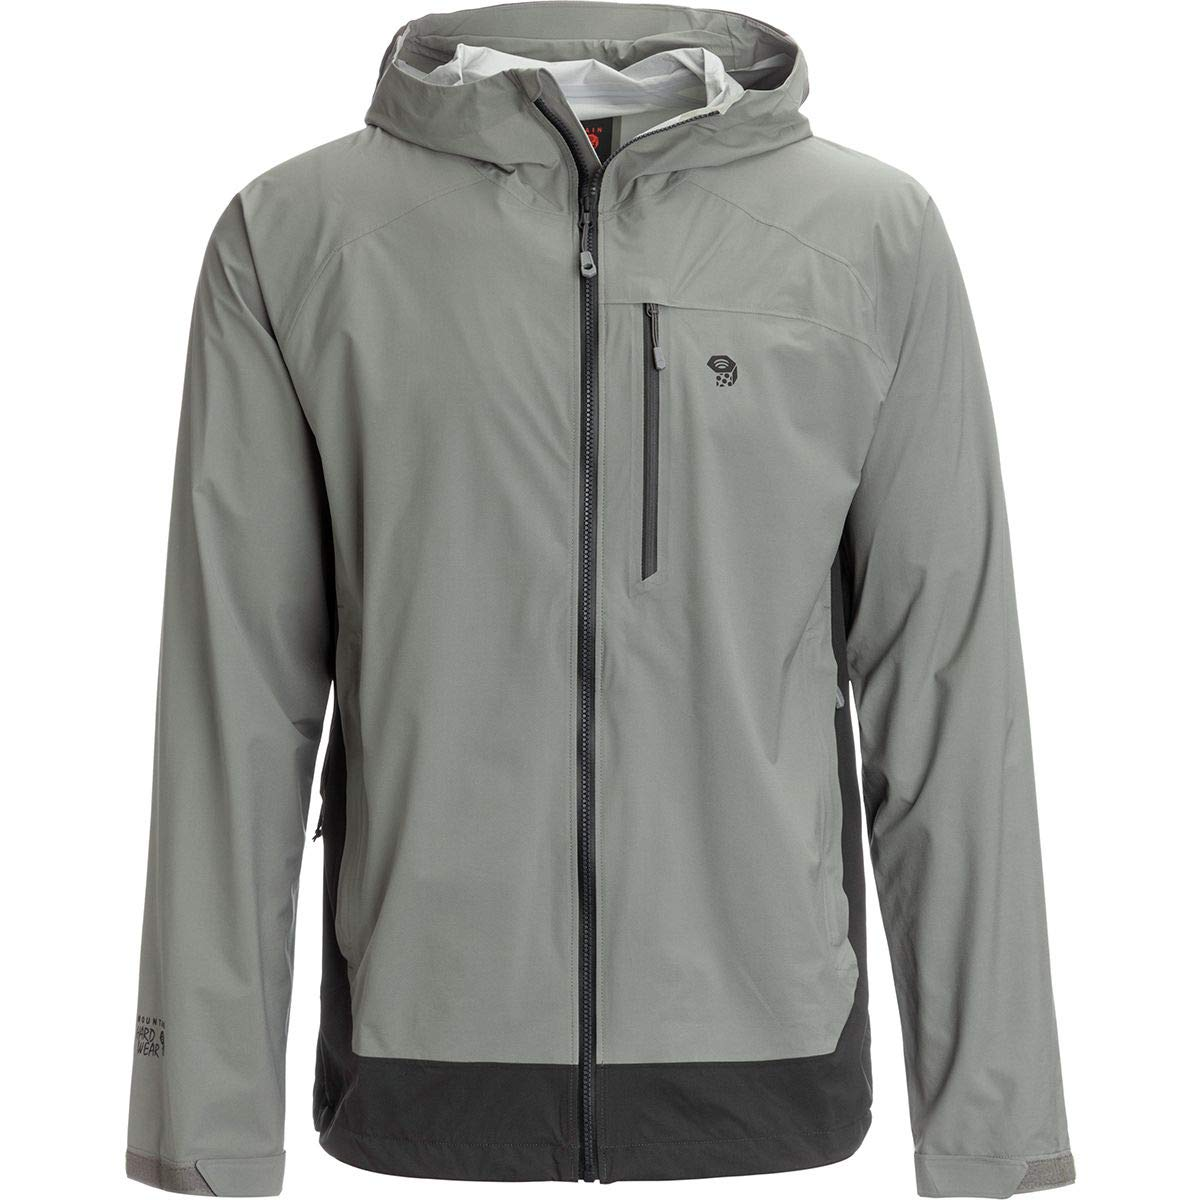 Mountain Hardwear Men's Stretch Ozonic Jacket Waterproof Breathable for Hiking, Backpacking, and Everyday